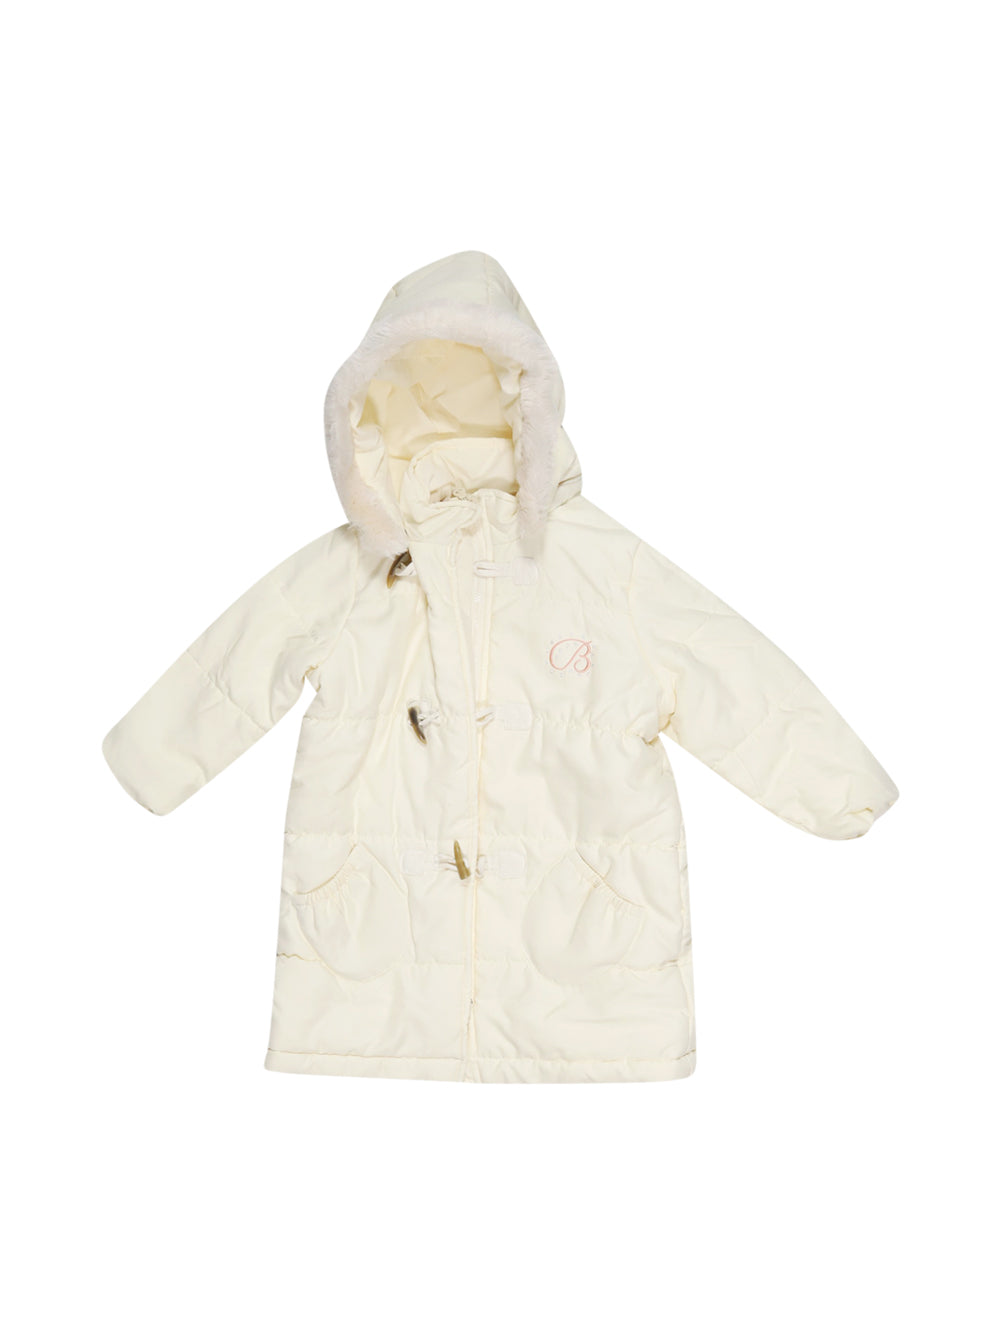 Front photo of Preloved Chicco White Girl's coat - size 12-18 mths